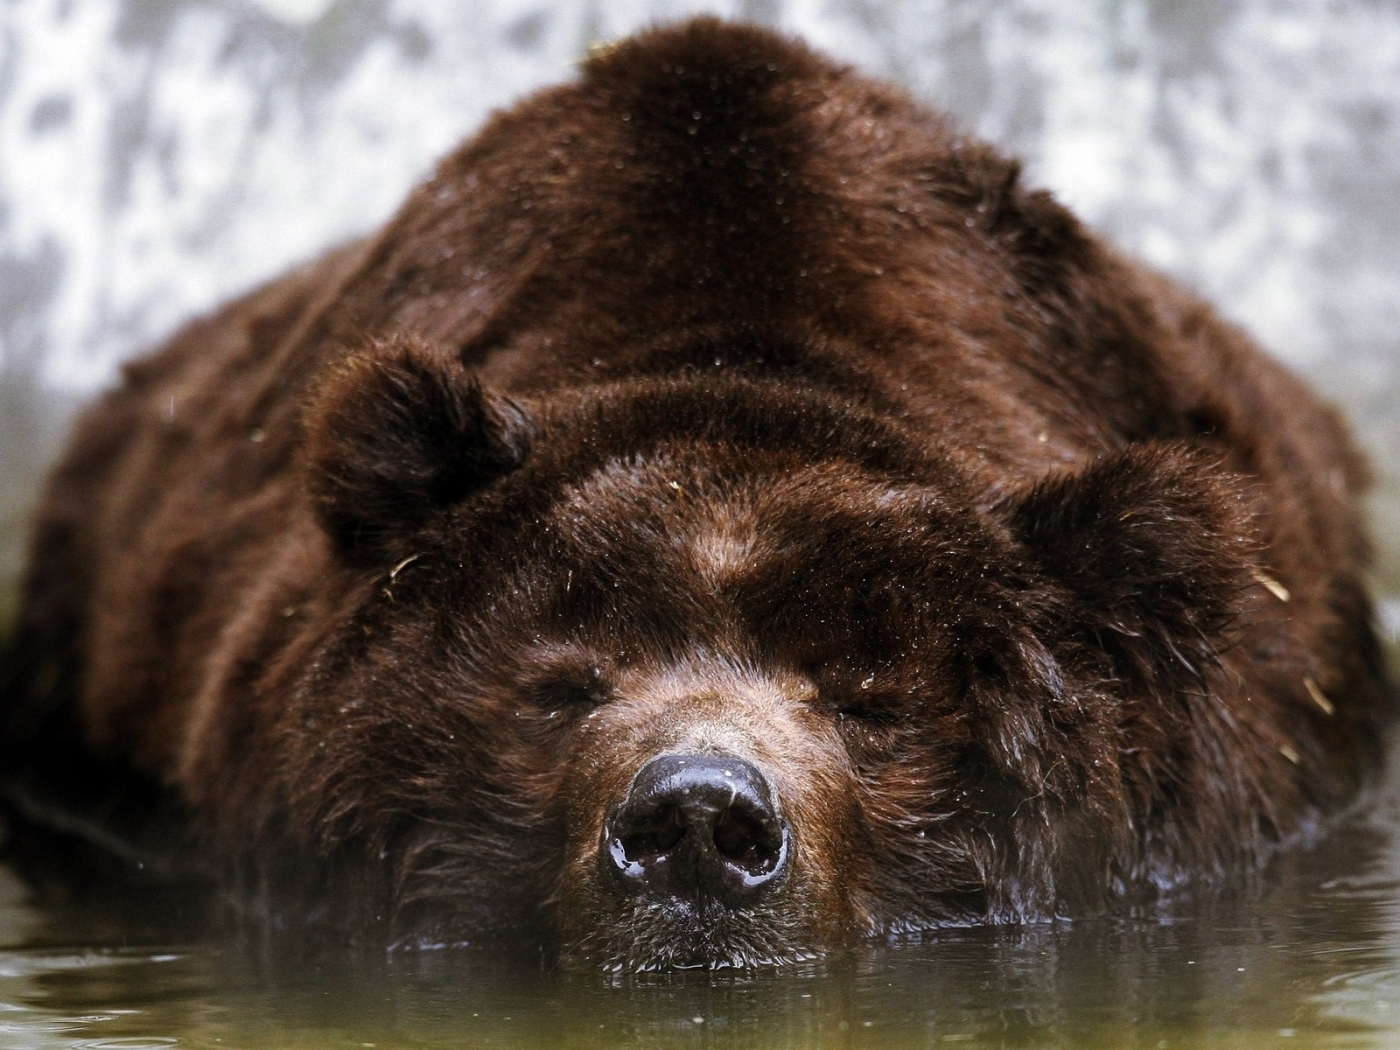 46622 download wallpaper Animals, Bears screensavers and pictures for free